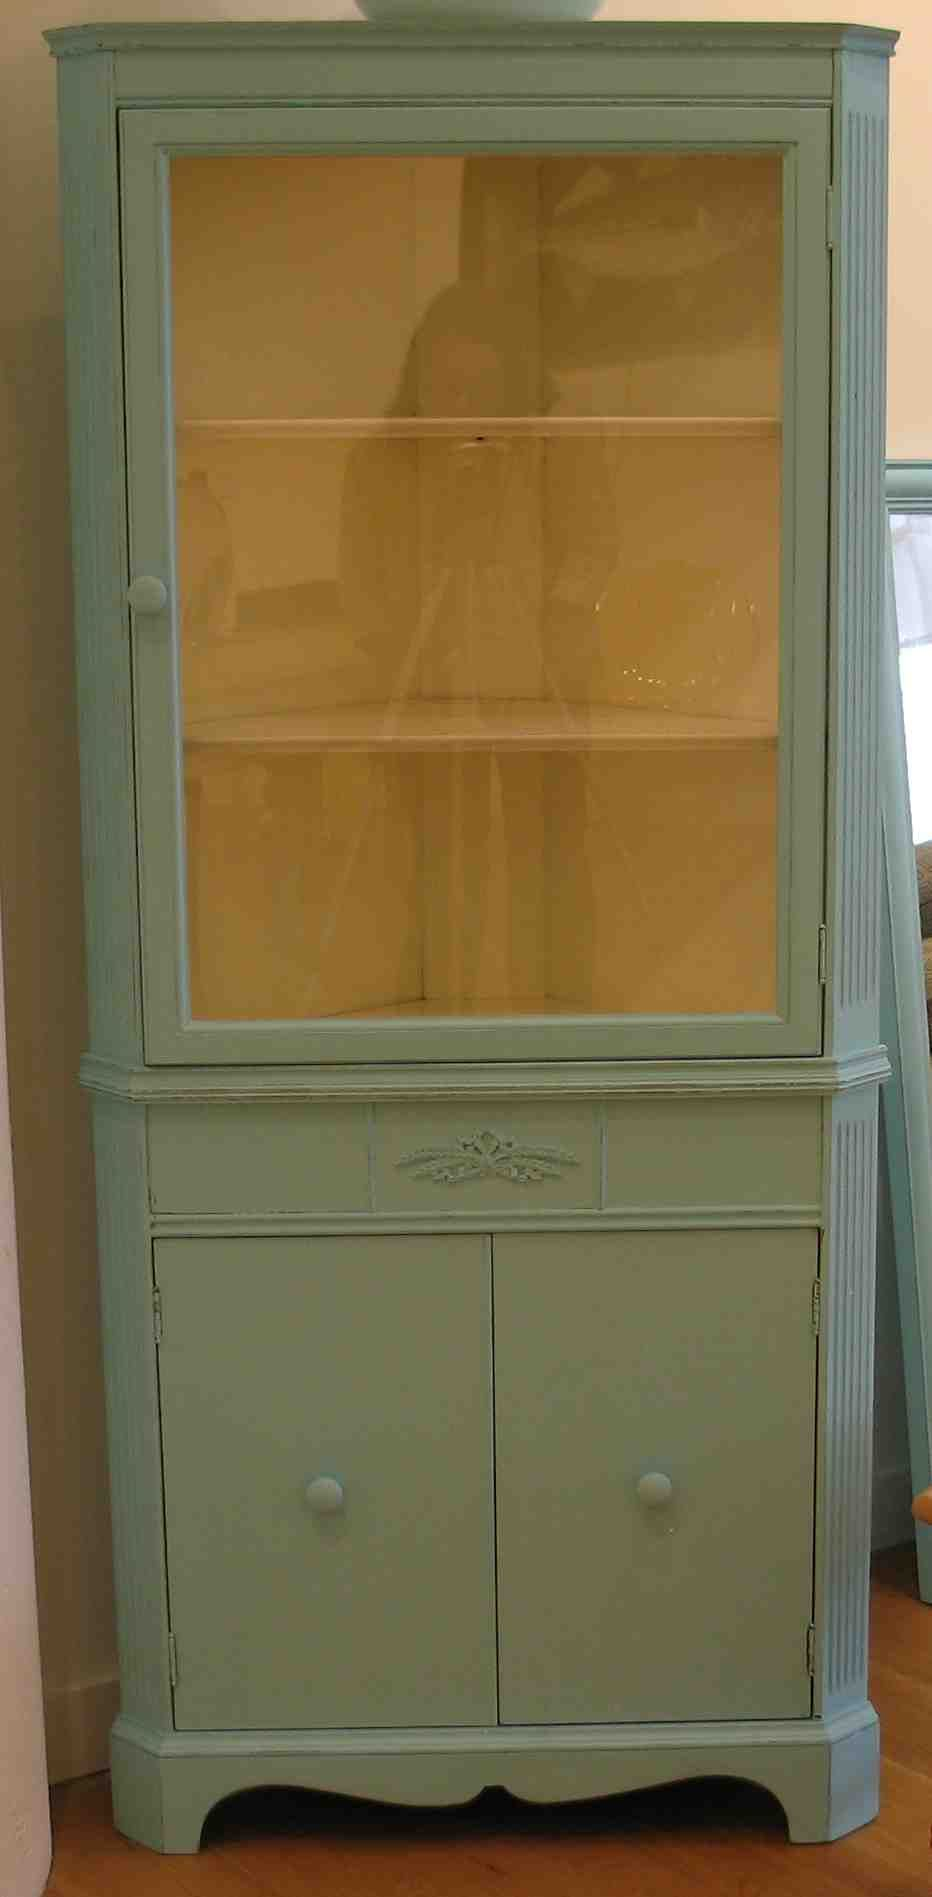 Finished Cabinet Doors Corner Cabinets Sweet Vintage Piece This 1930s Corner Cabinet